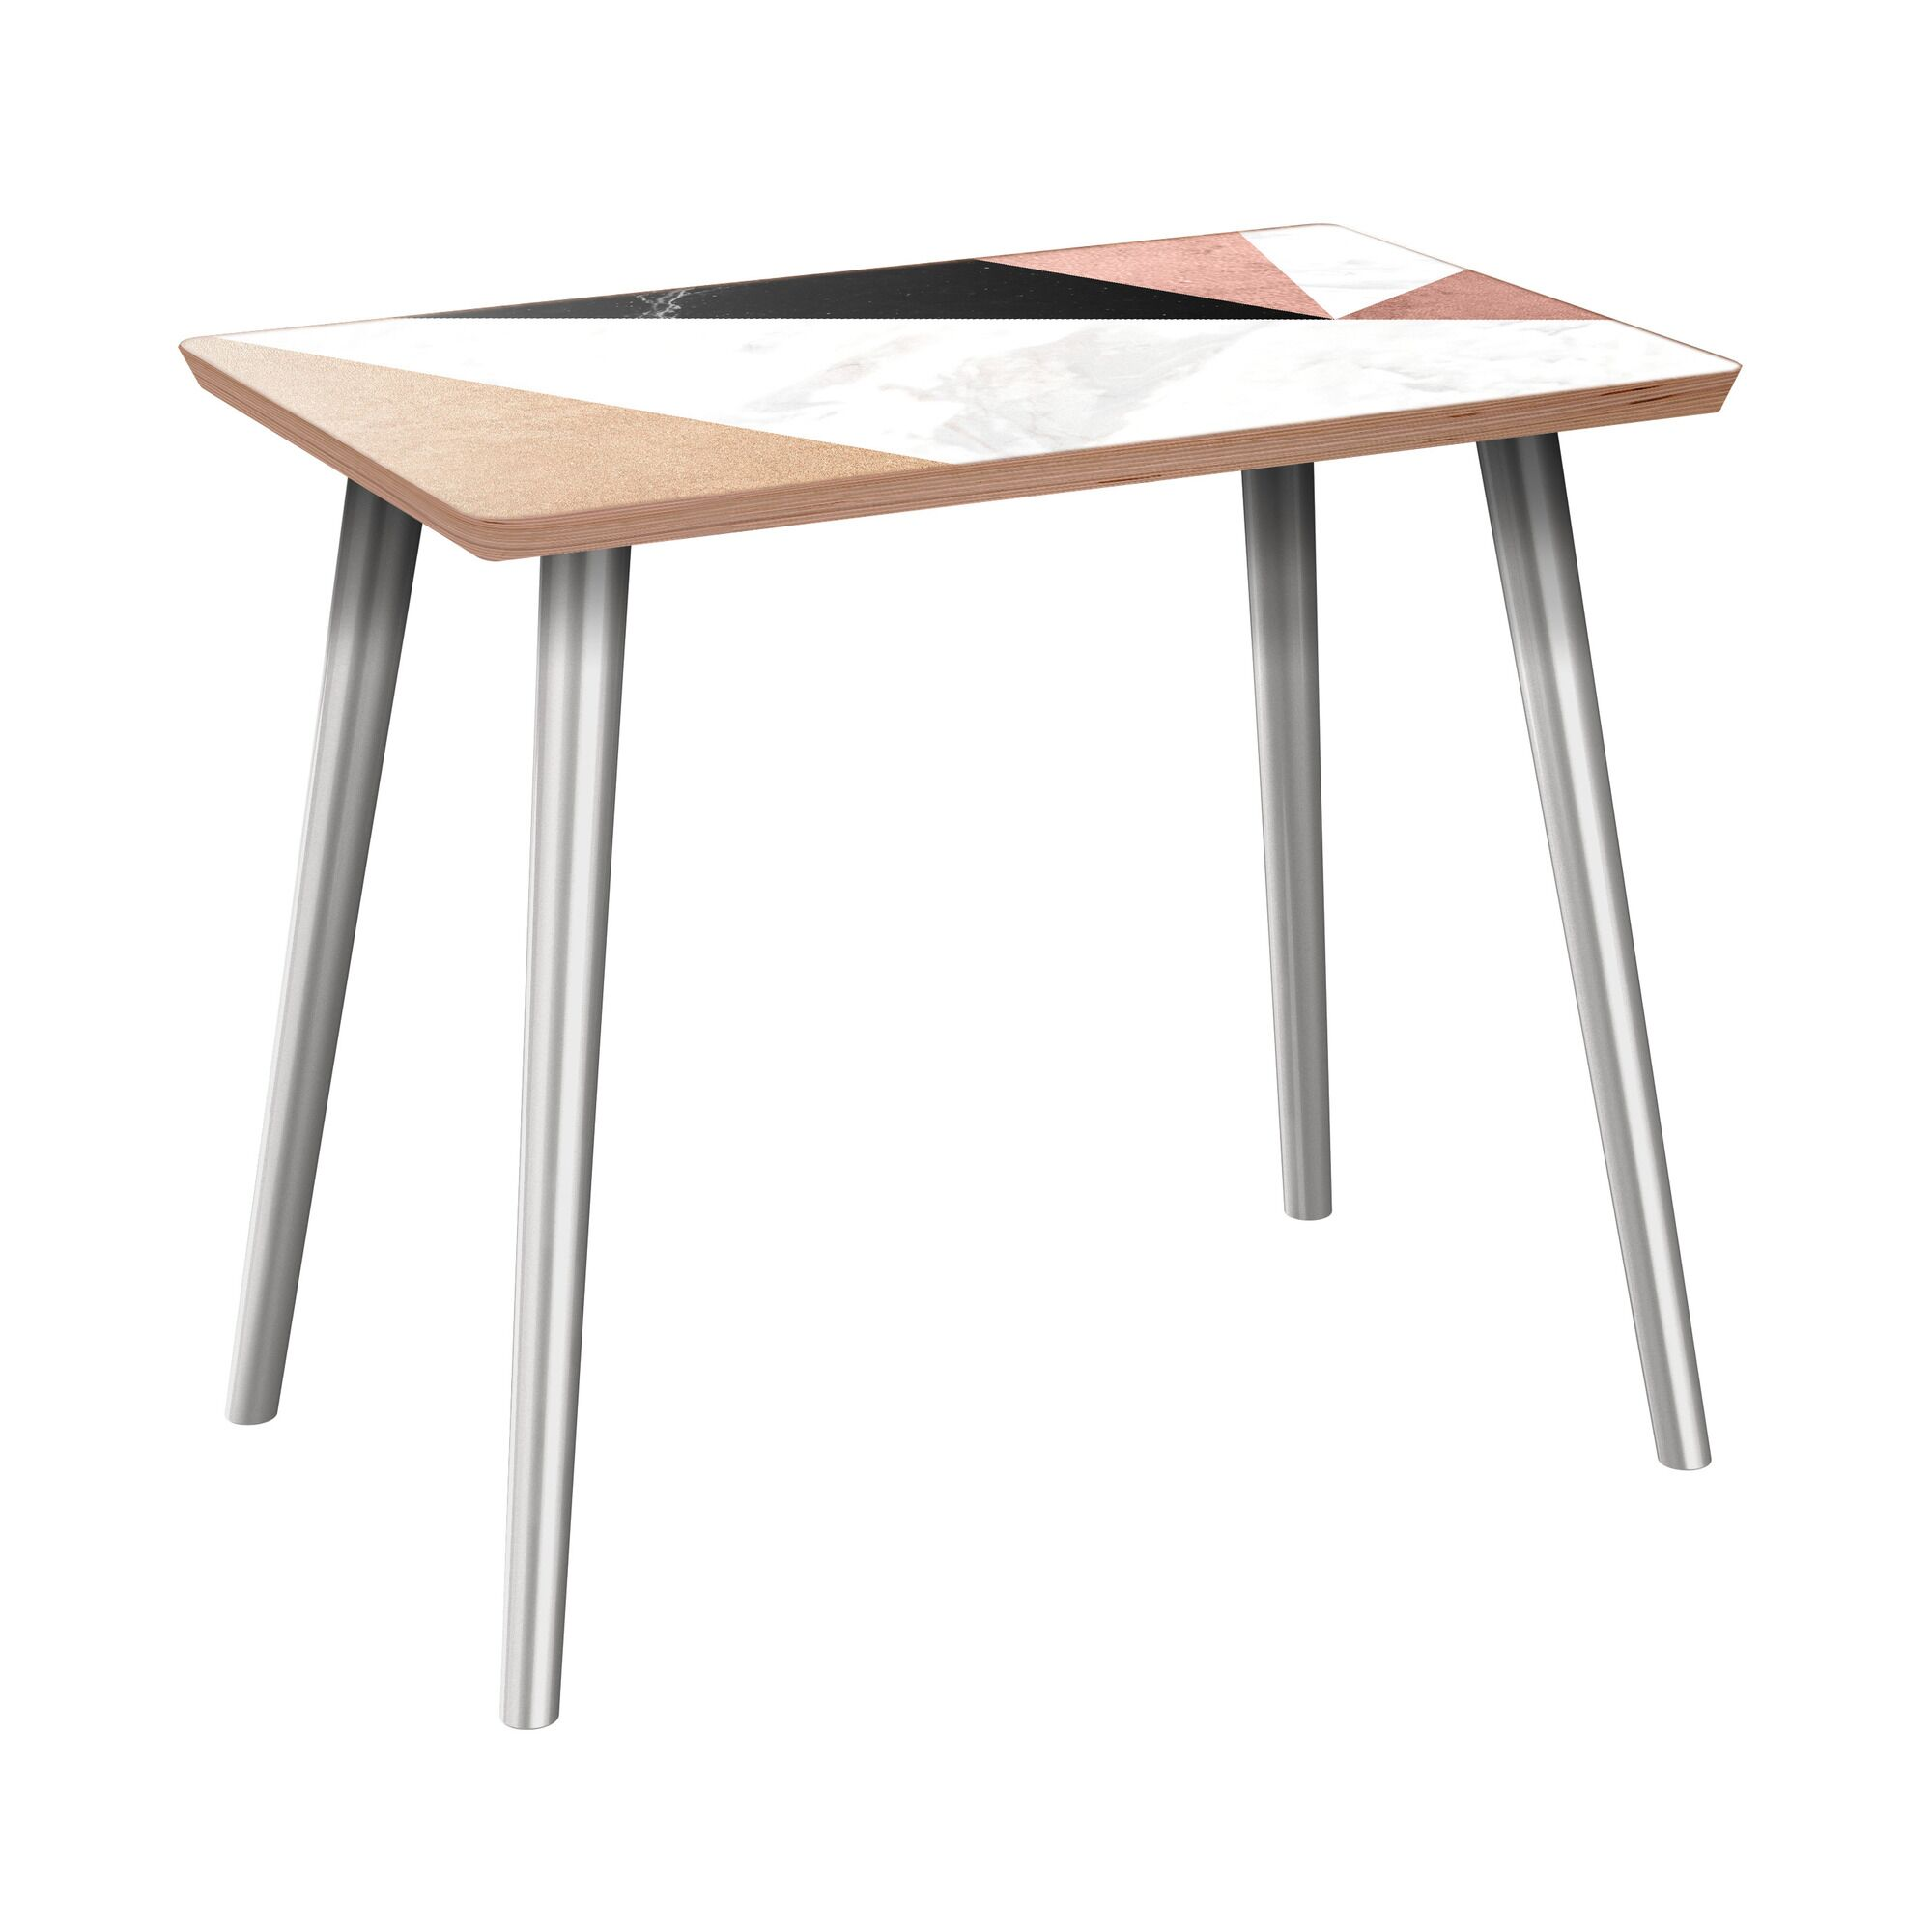 Ruble End Table Table Base Color: Chrome, Table Top Color: Walnut